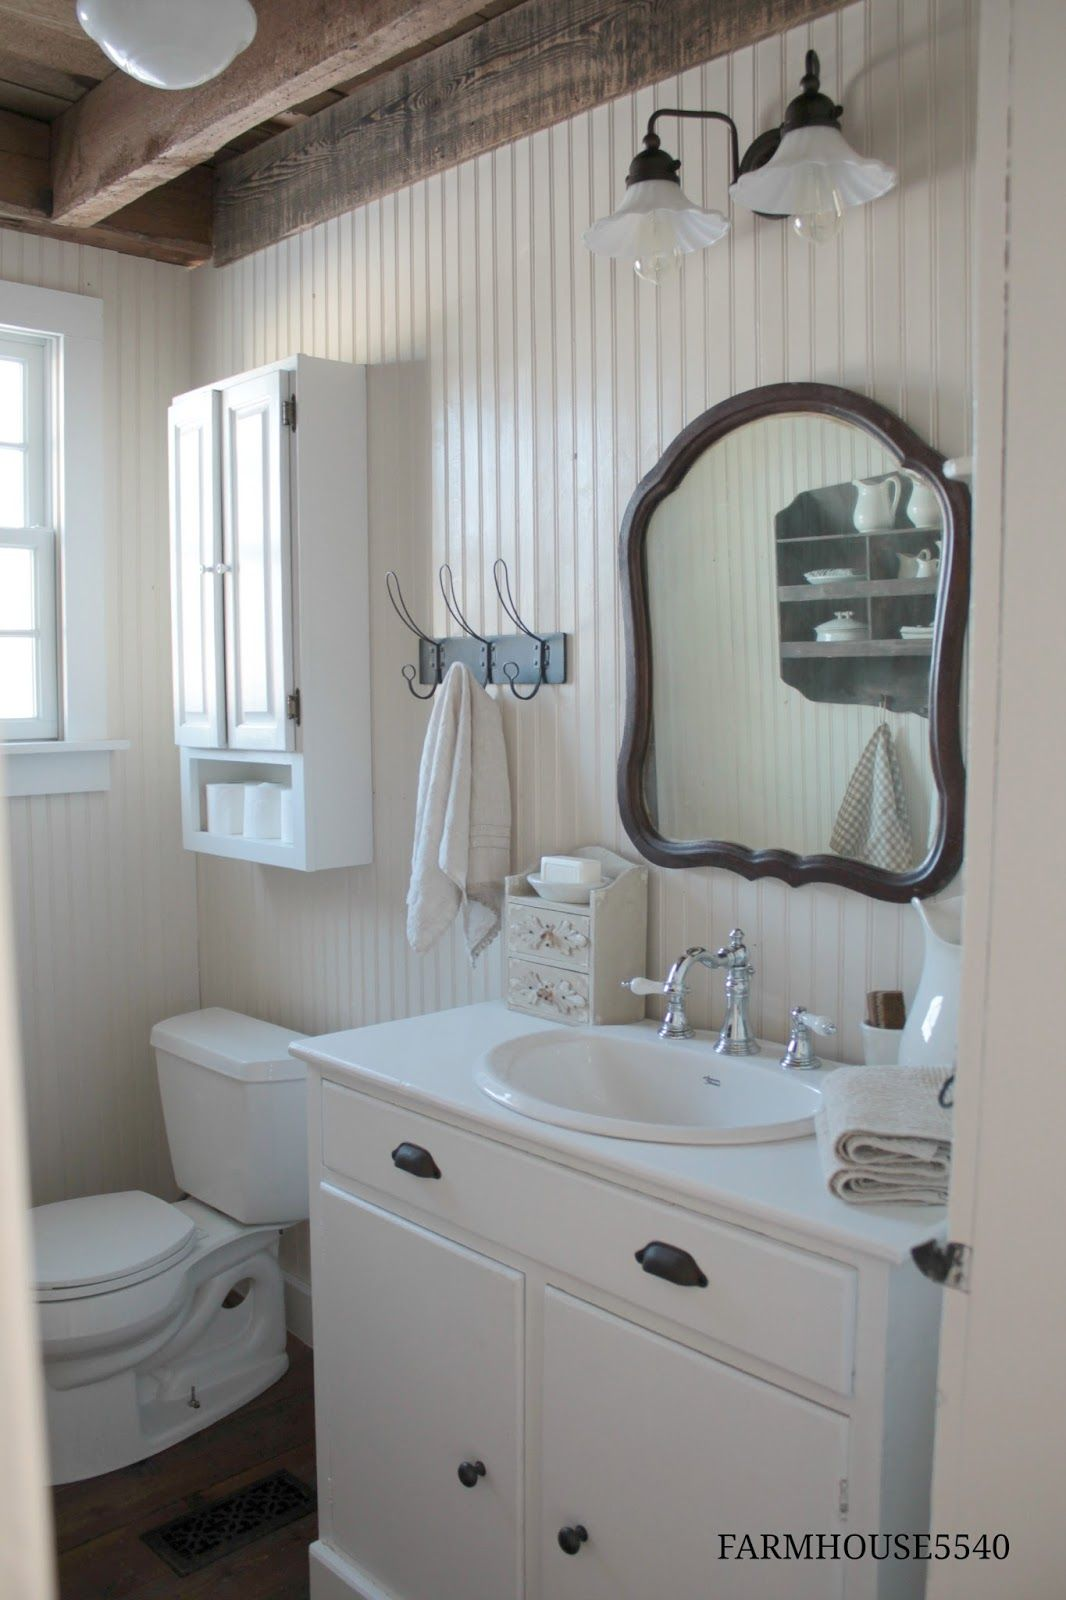 So here it is...our farmhouse powder room!!! Even though